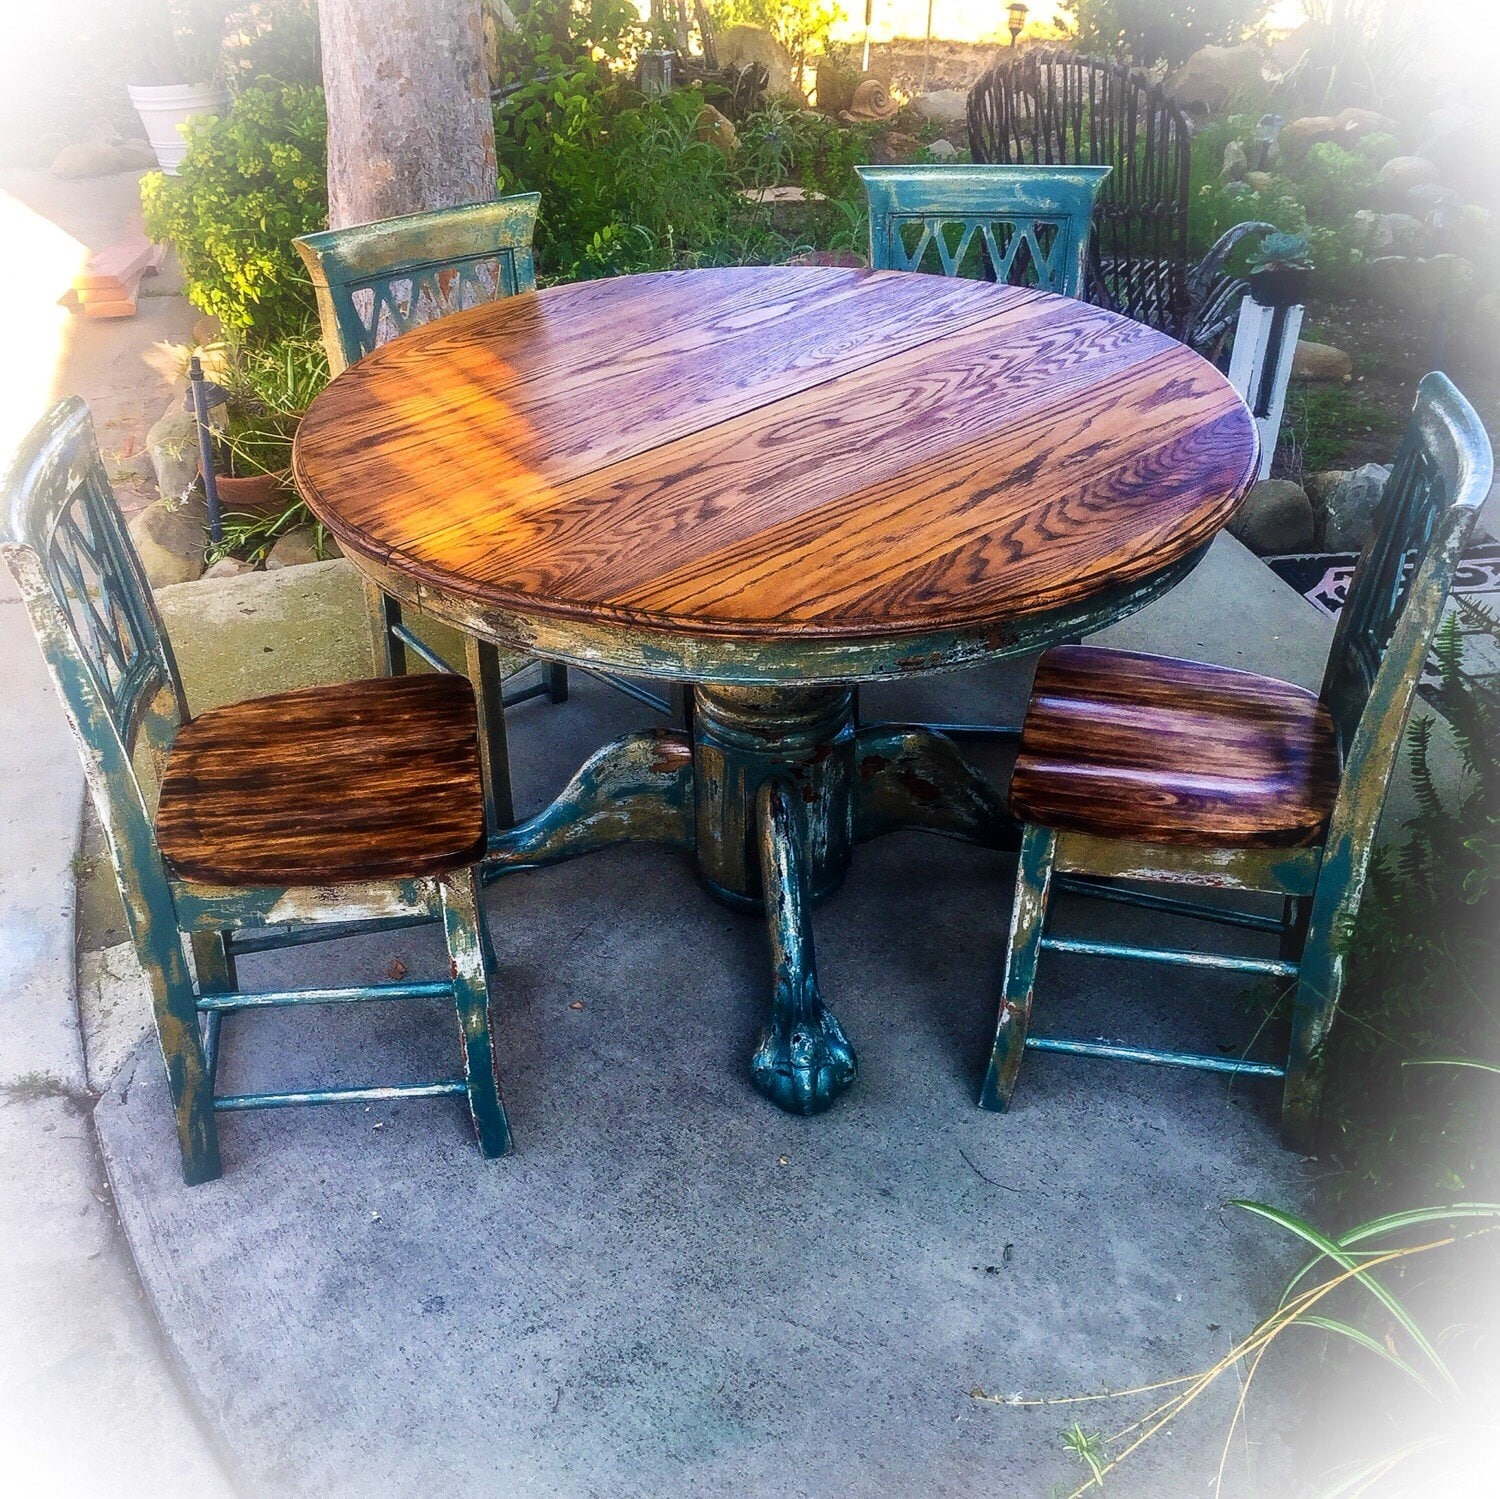 SOLD Burnt Oak Table & Chair Set large distressed